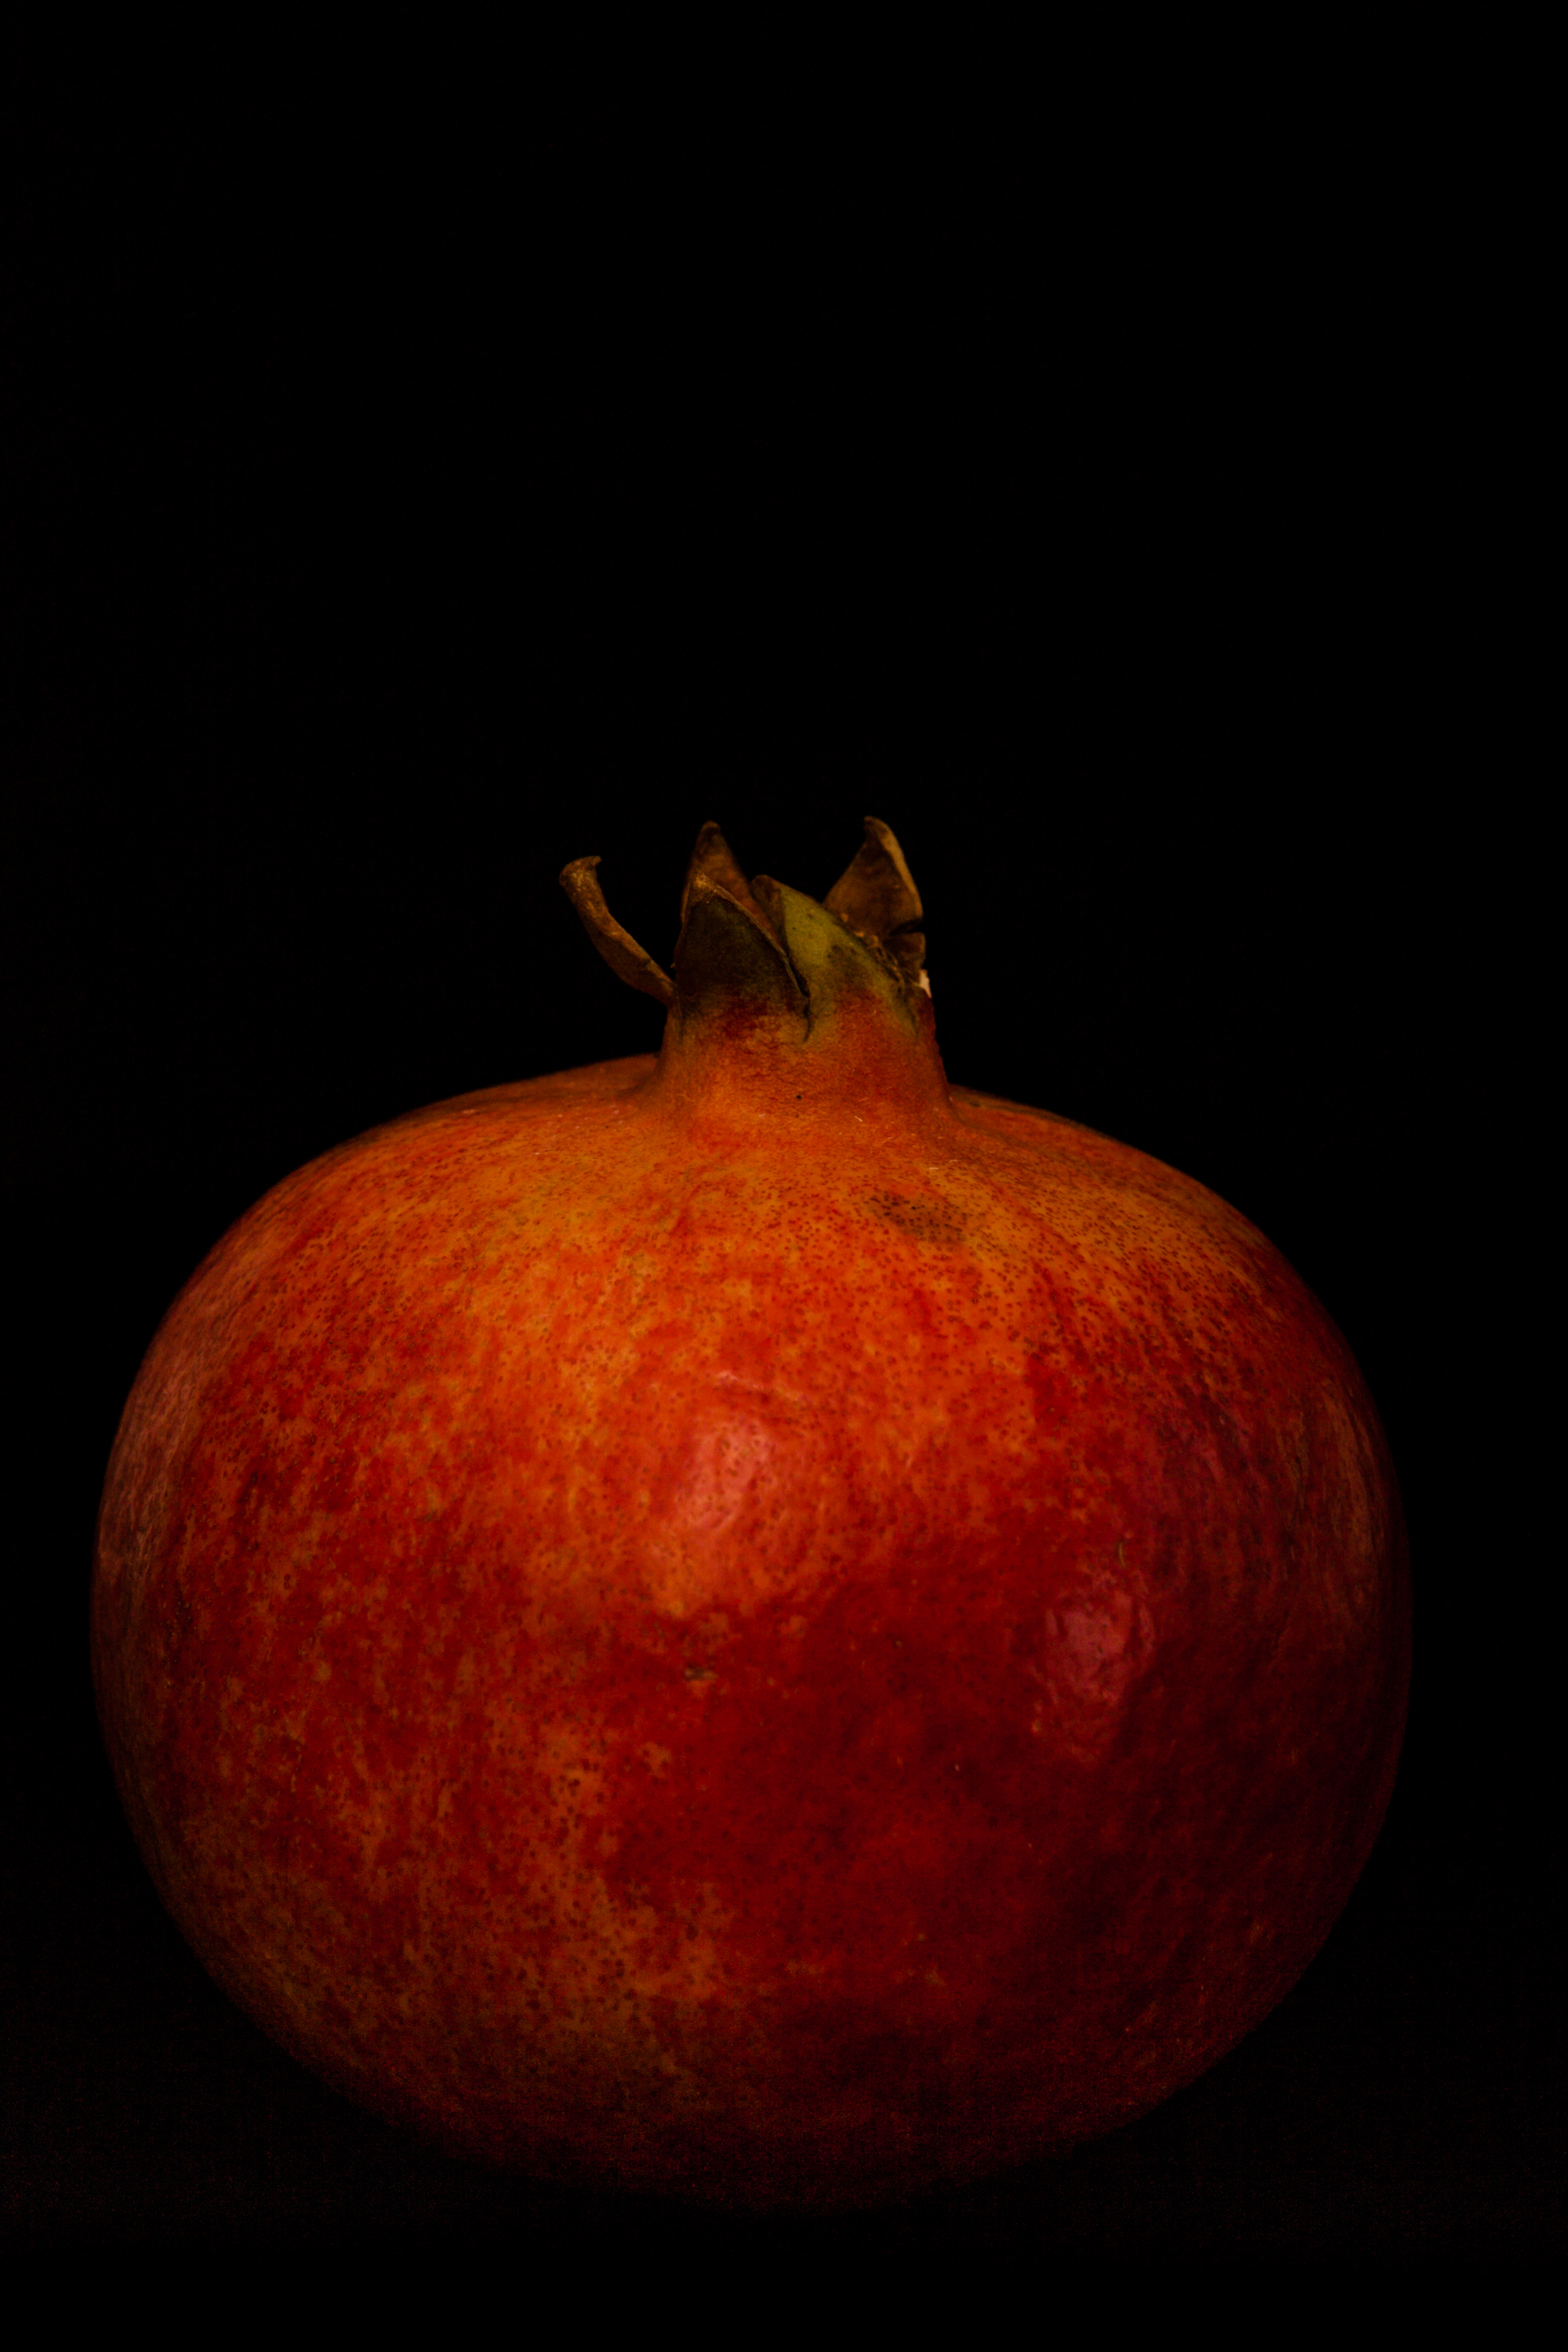 An Image of a Pomegranade